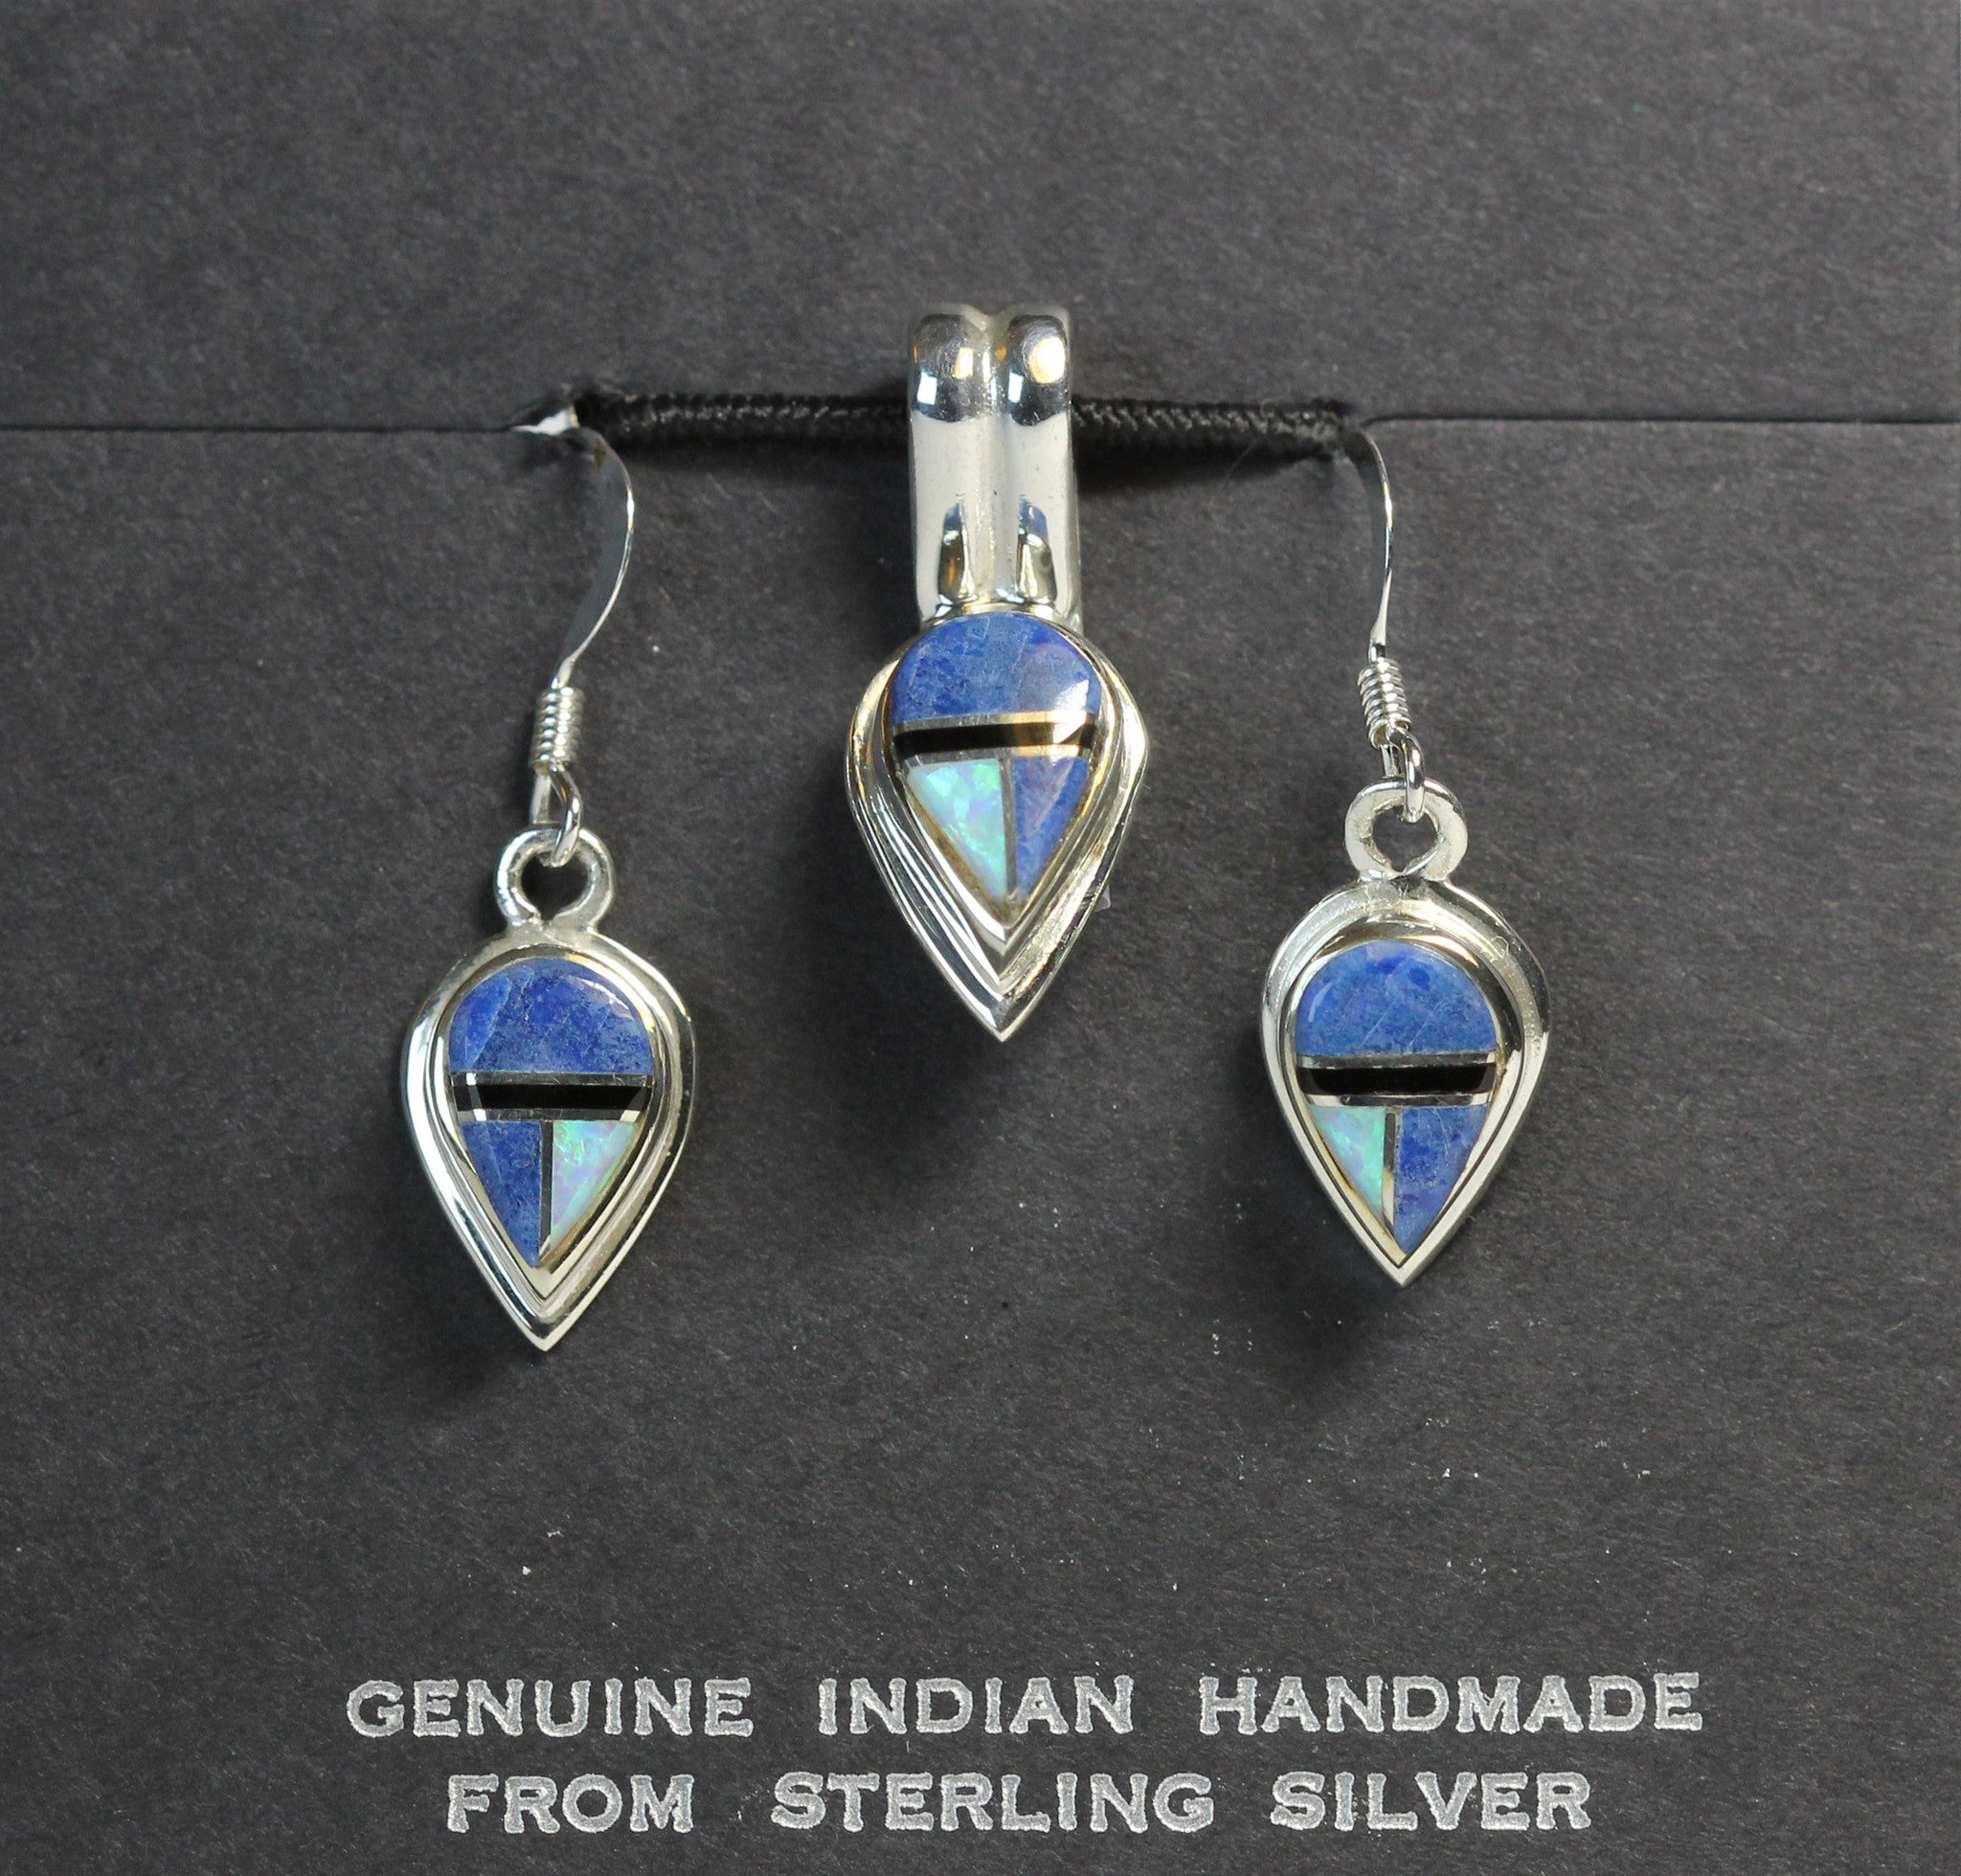 teardrops wire set collections erfw sets inlay pendant stone jewelry br opal denim reverse french pnt copy genuine teardrop fat earrings native img llc multi silver american